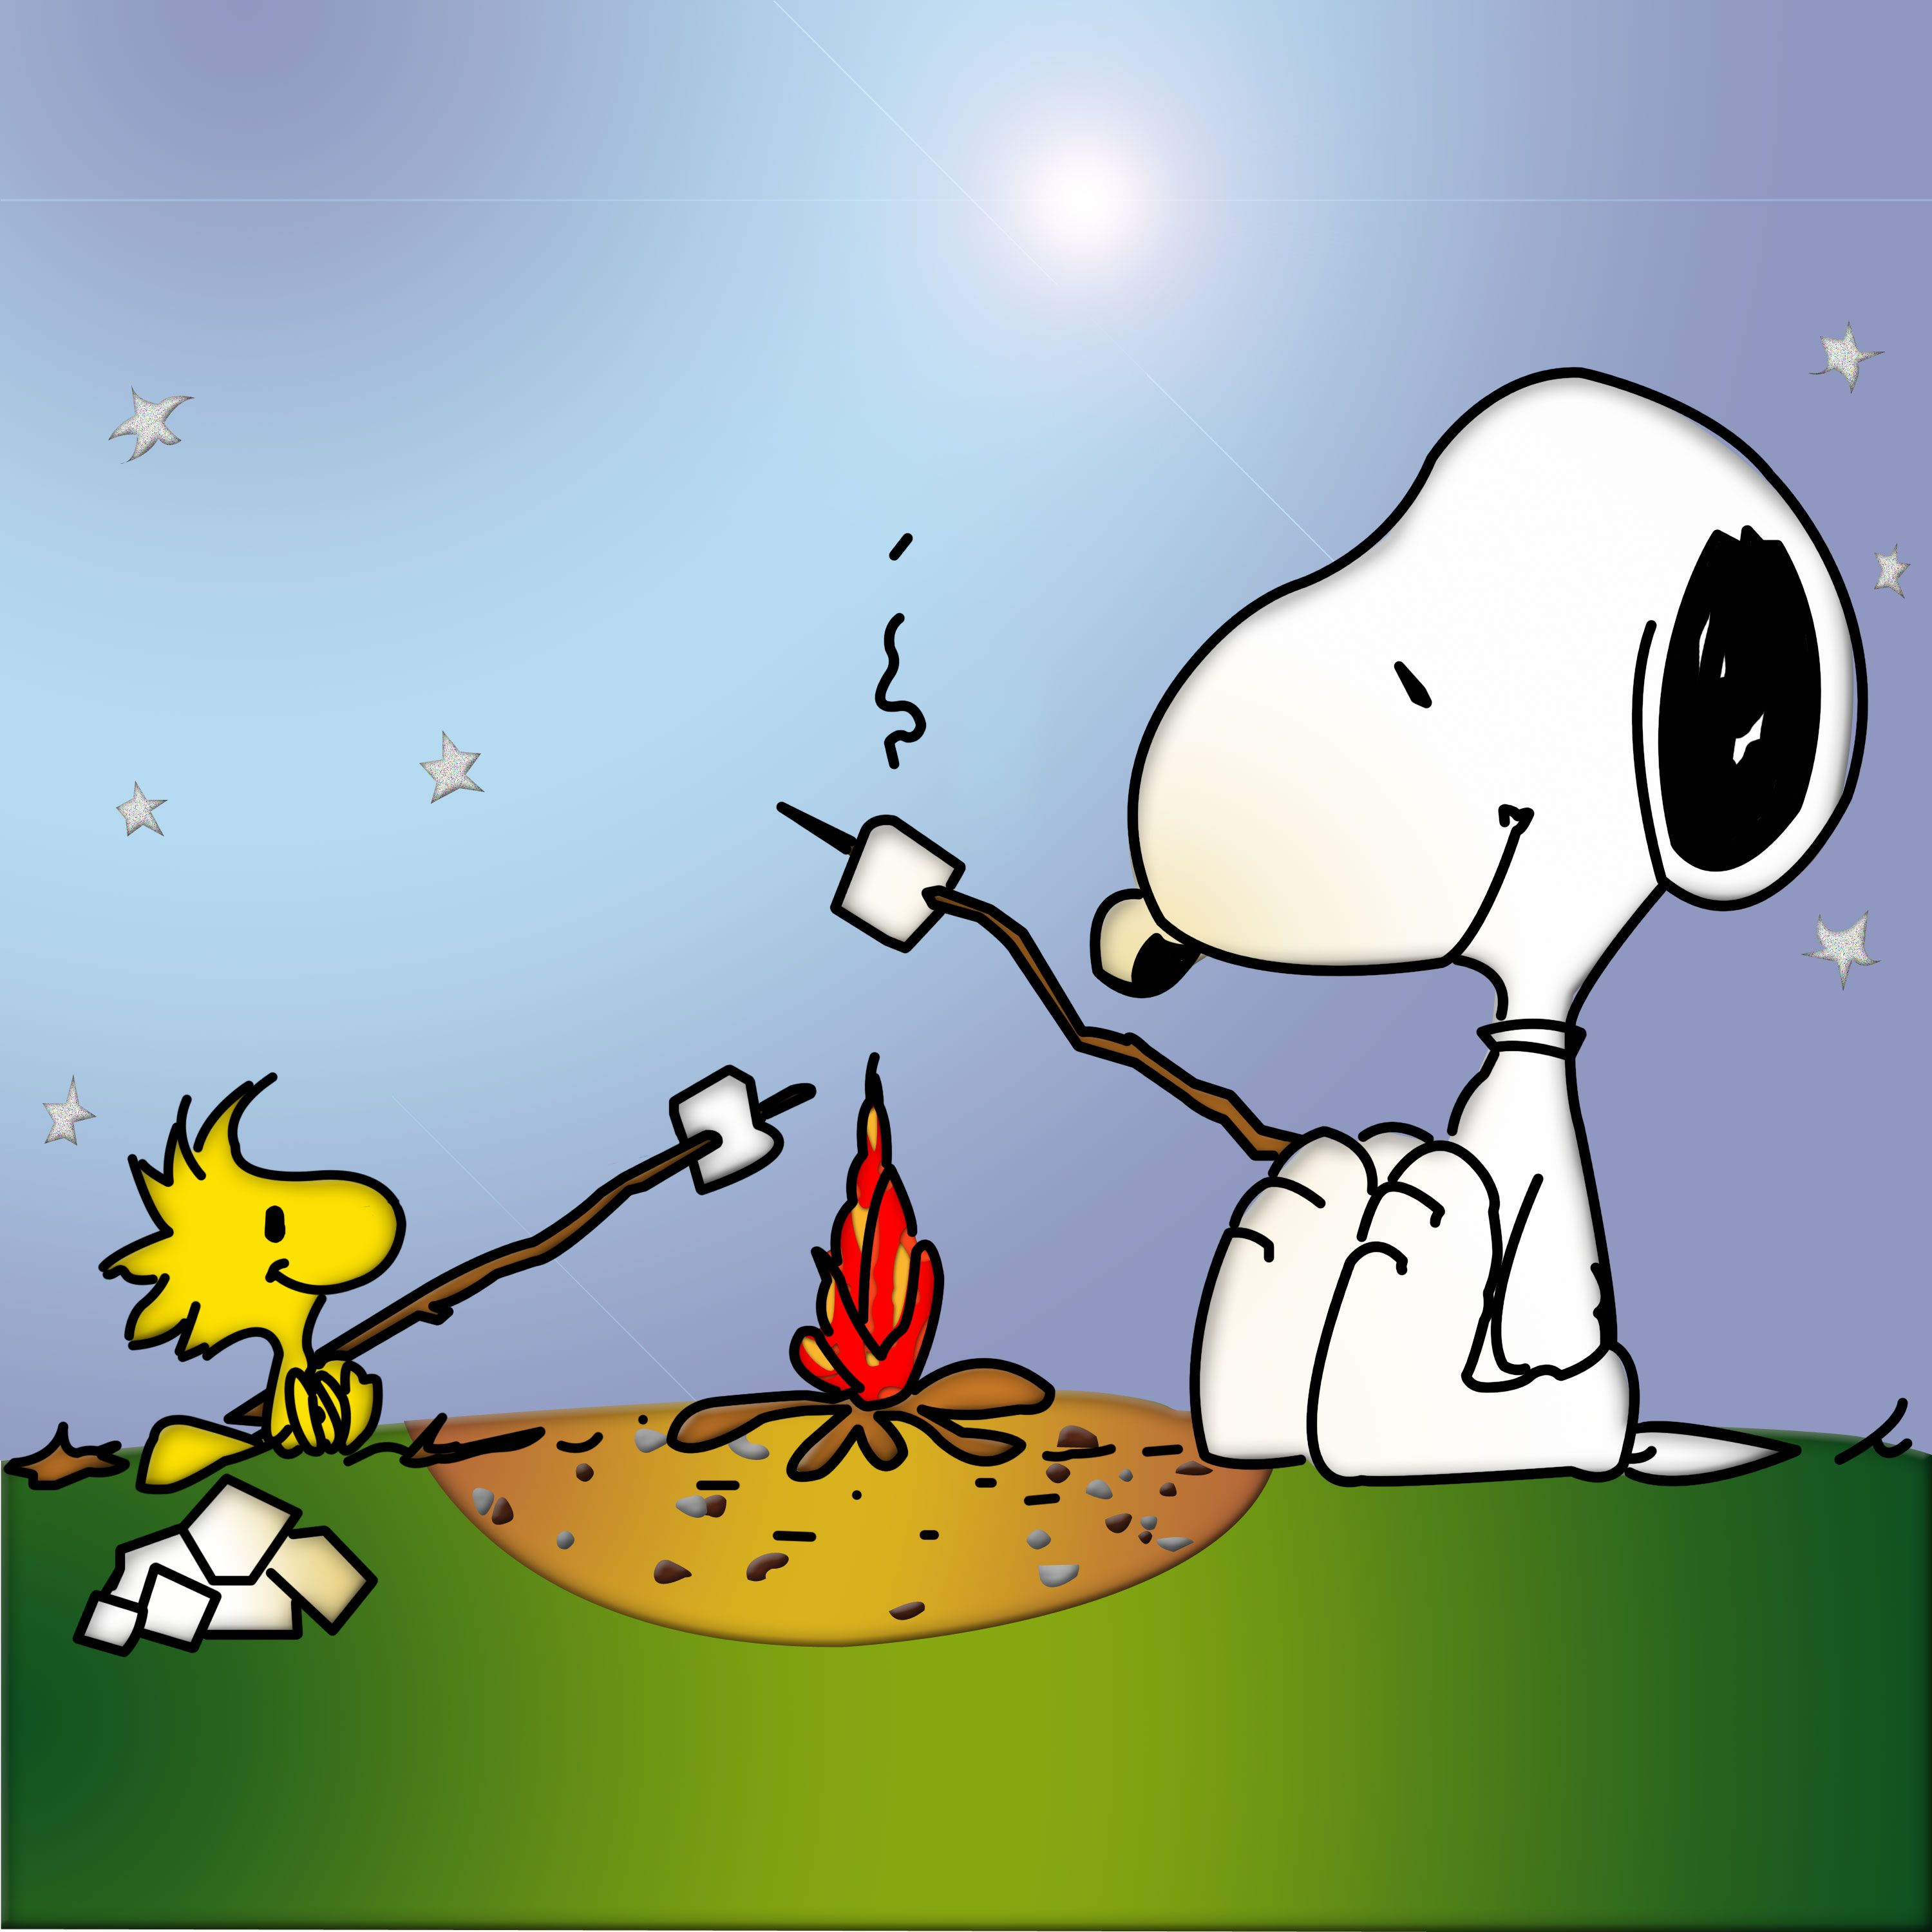 Snoopy woodstock wallpaper download free cartoons images - Free snoopy images ...